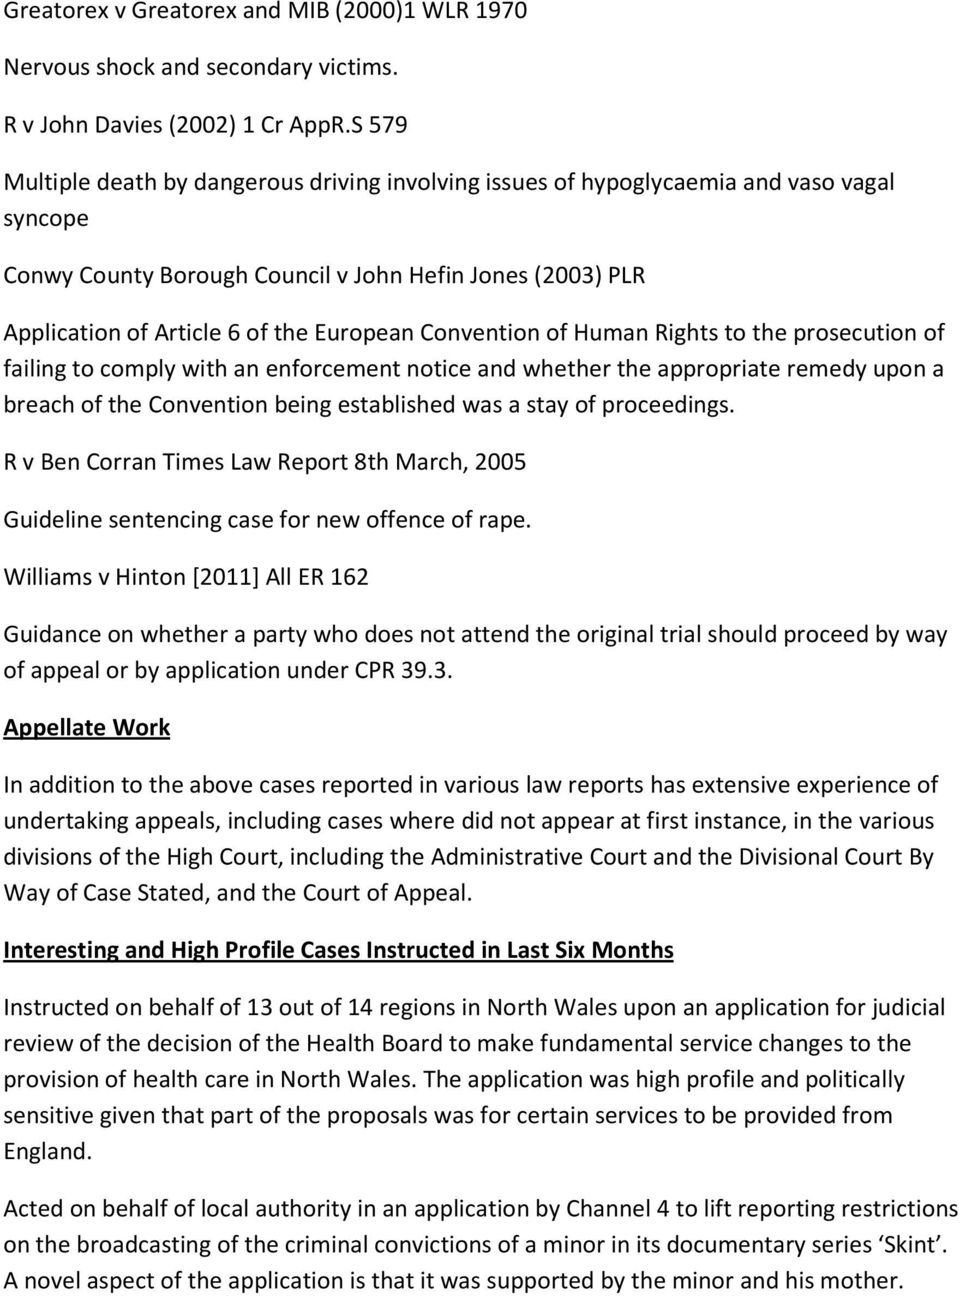 Convention of Human Rights to the prosecution of failing to comply with an enforcement notice and whether the appropriate remedy upon a breach of the Convention being established was a stay of